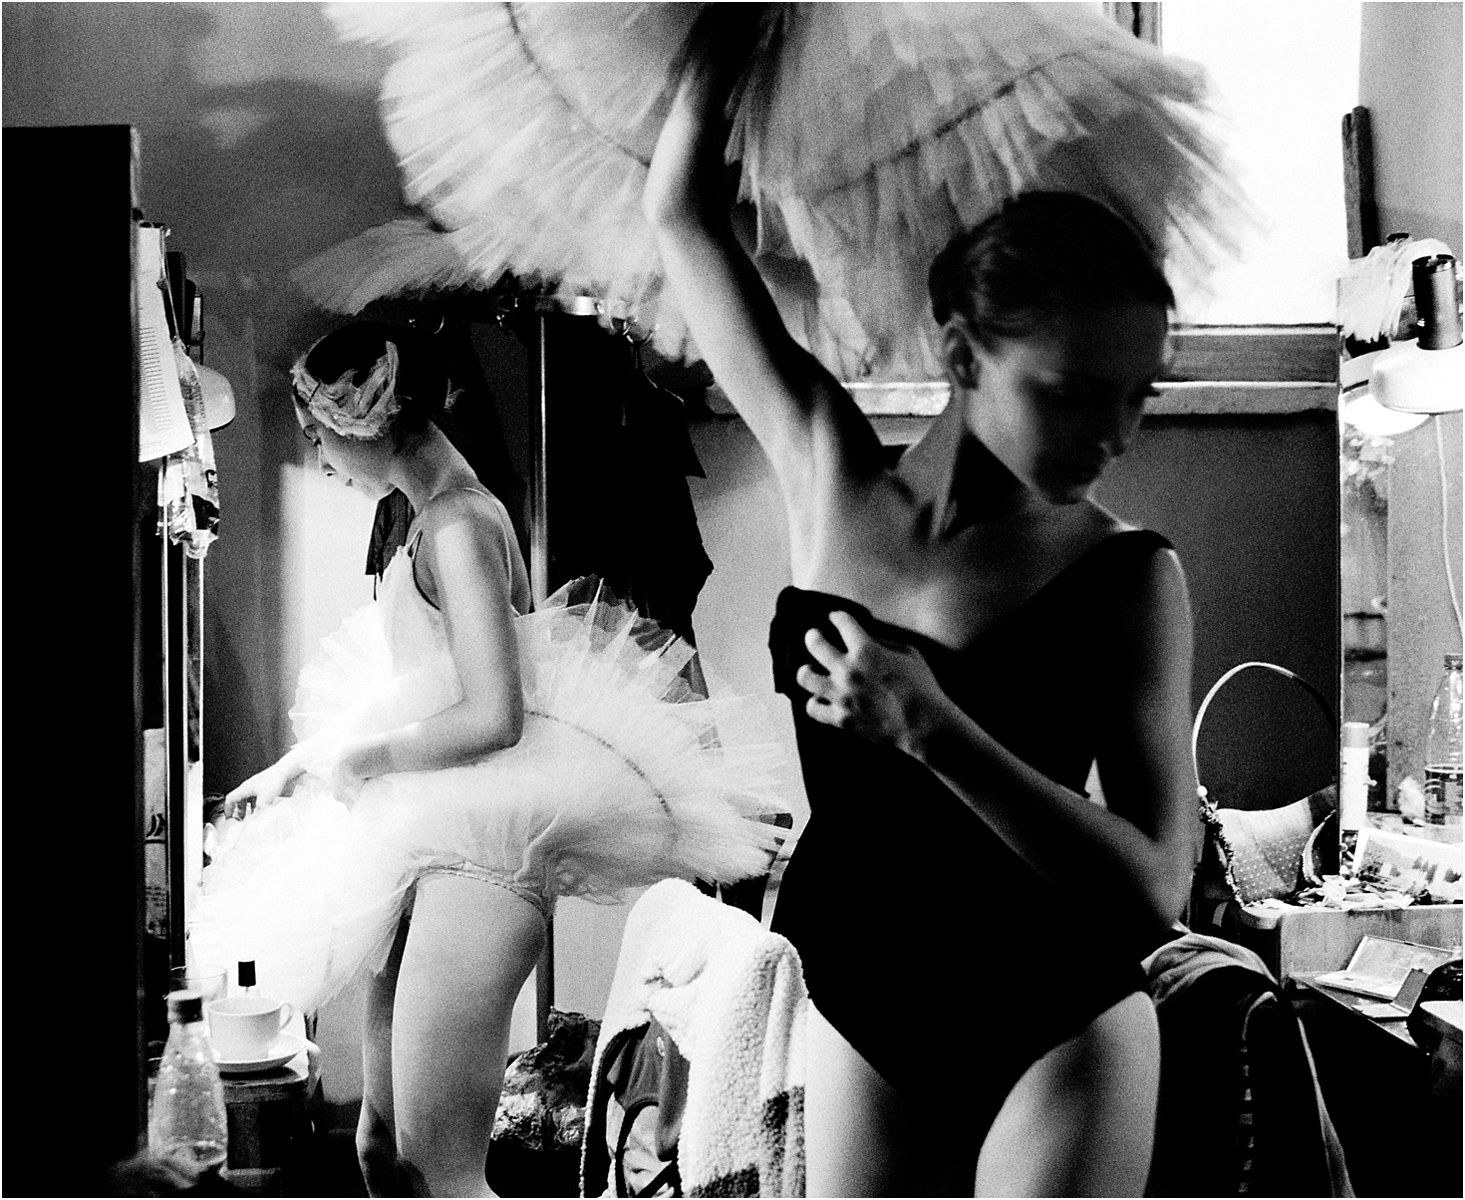 Backstage -The Russian Ballet - St. Petersburg, Russia